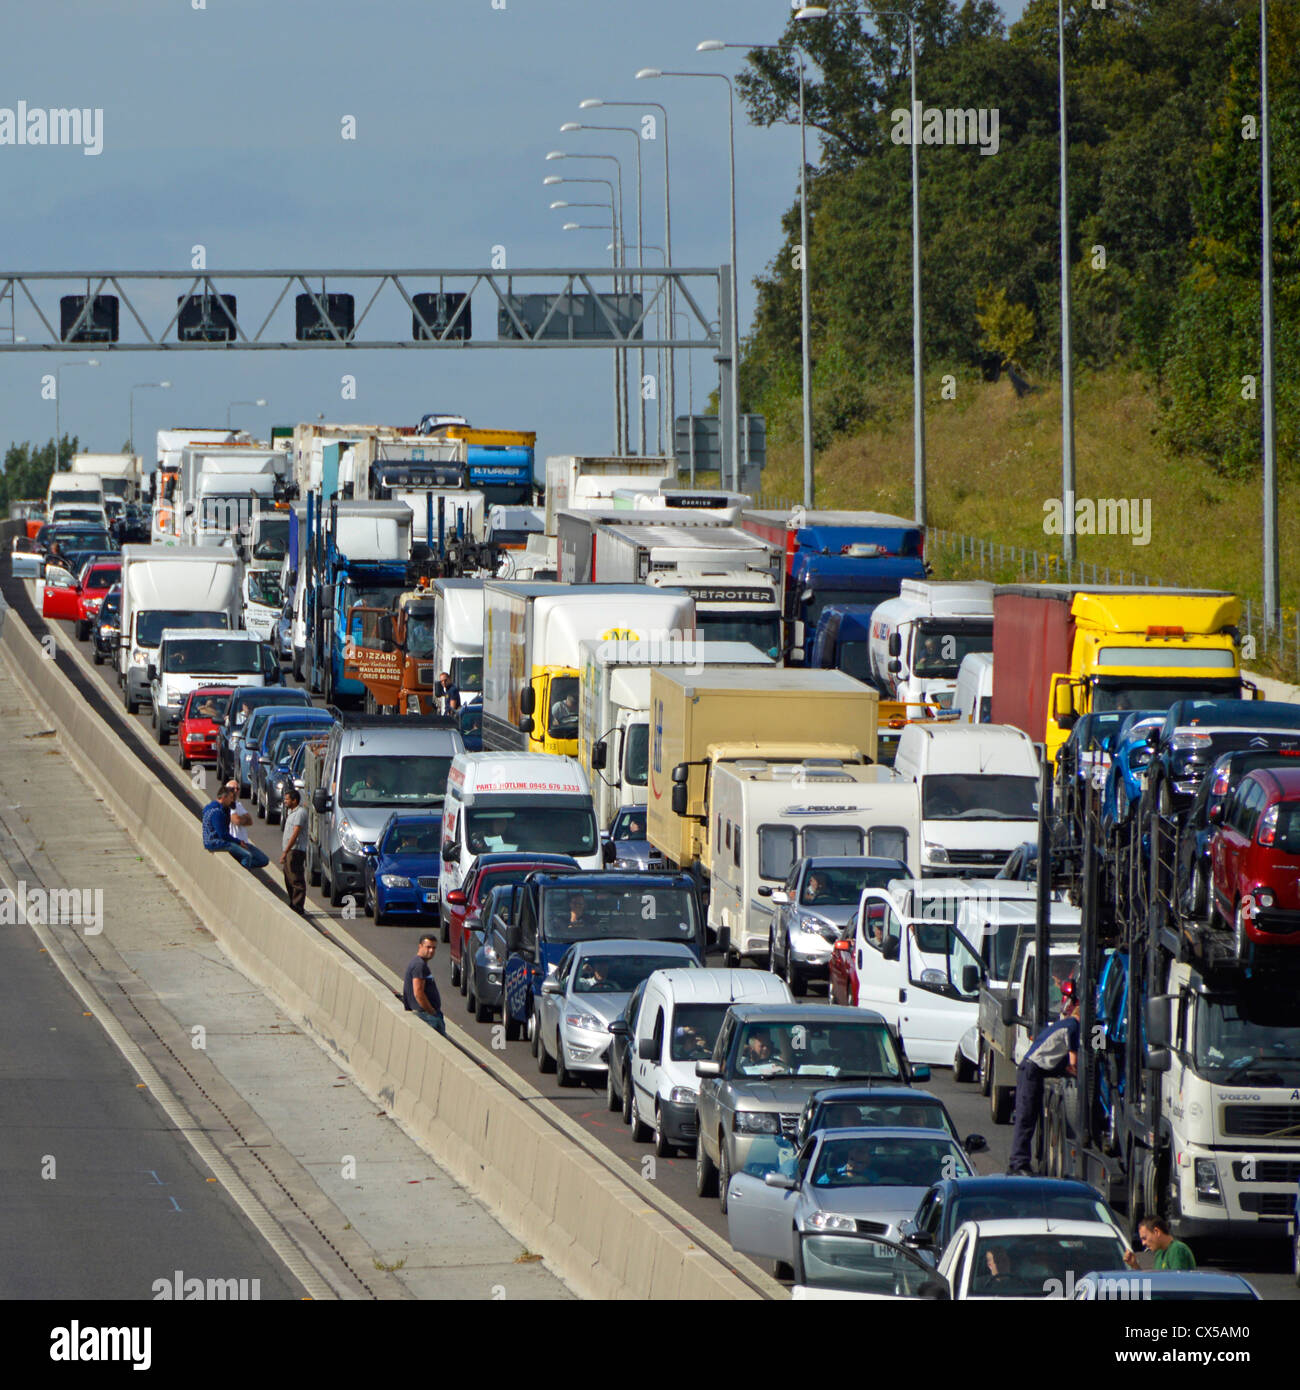 Stationary traffic gridlocked on four lanes of M25 motorway - Stock Image